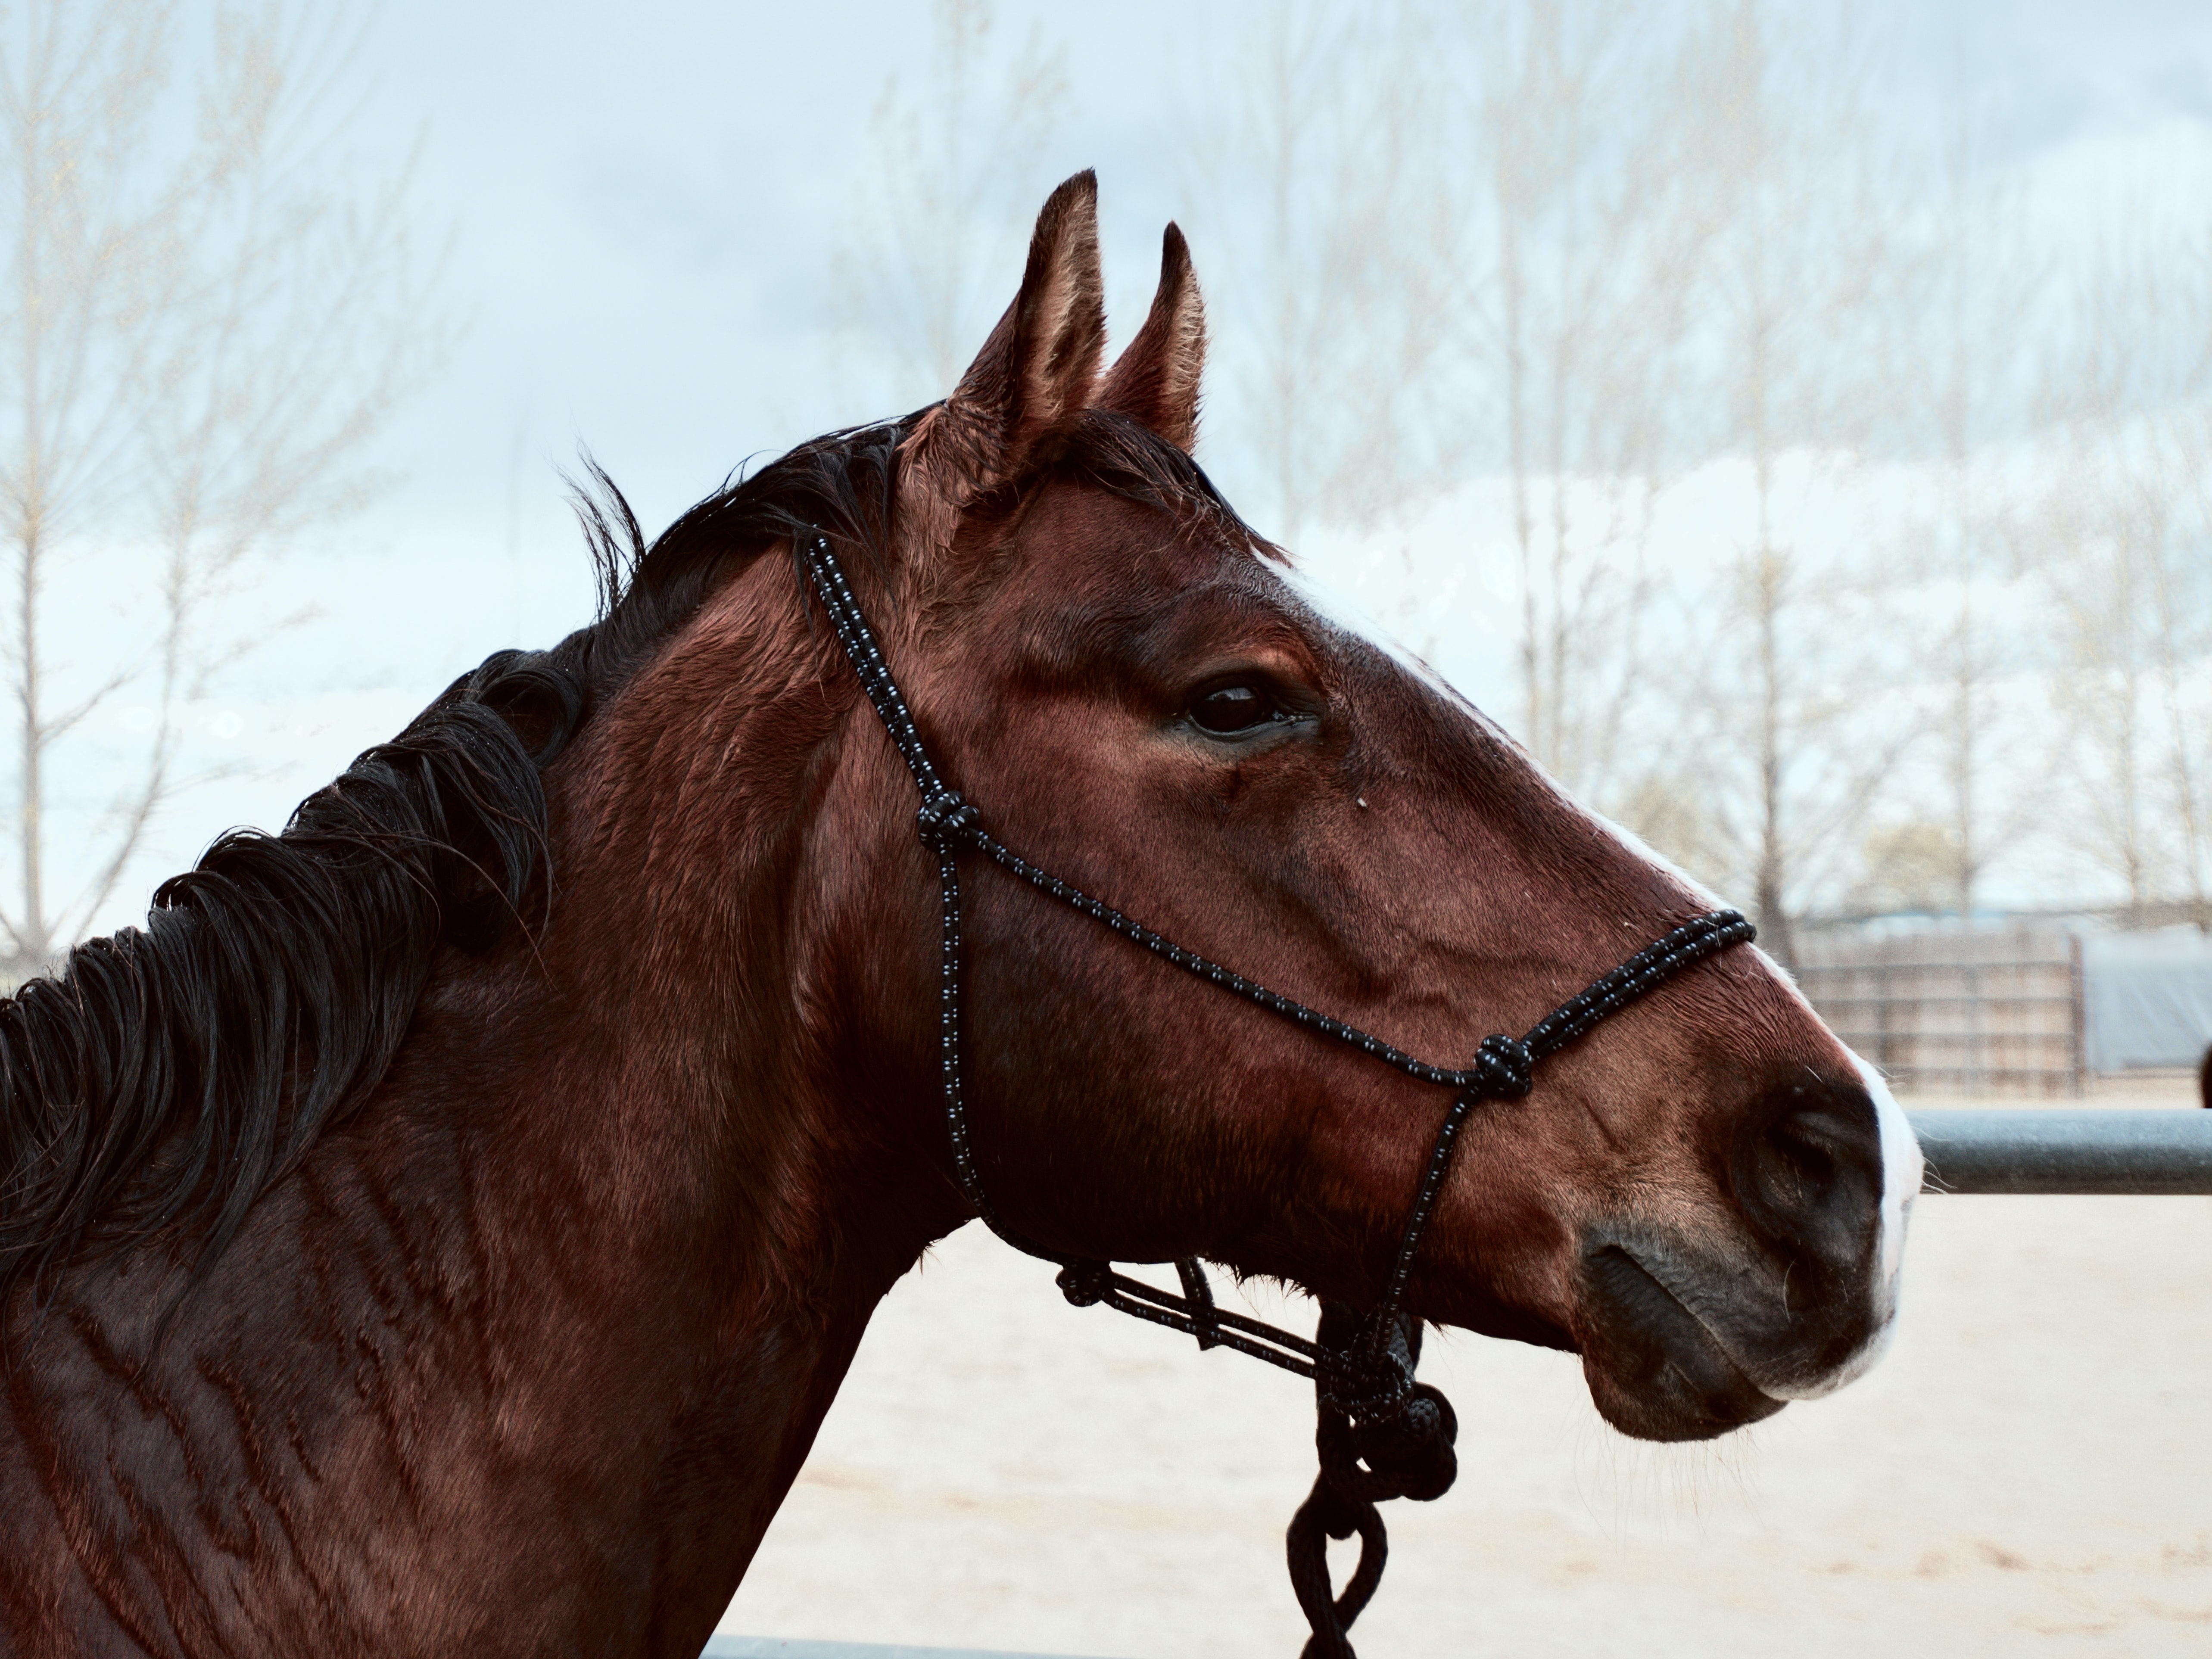 The side of the head of a brown horse with a wet black mane